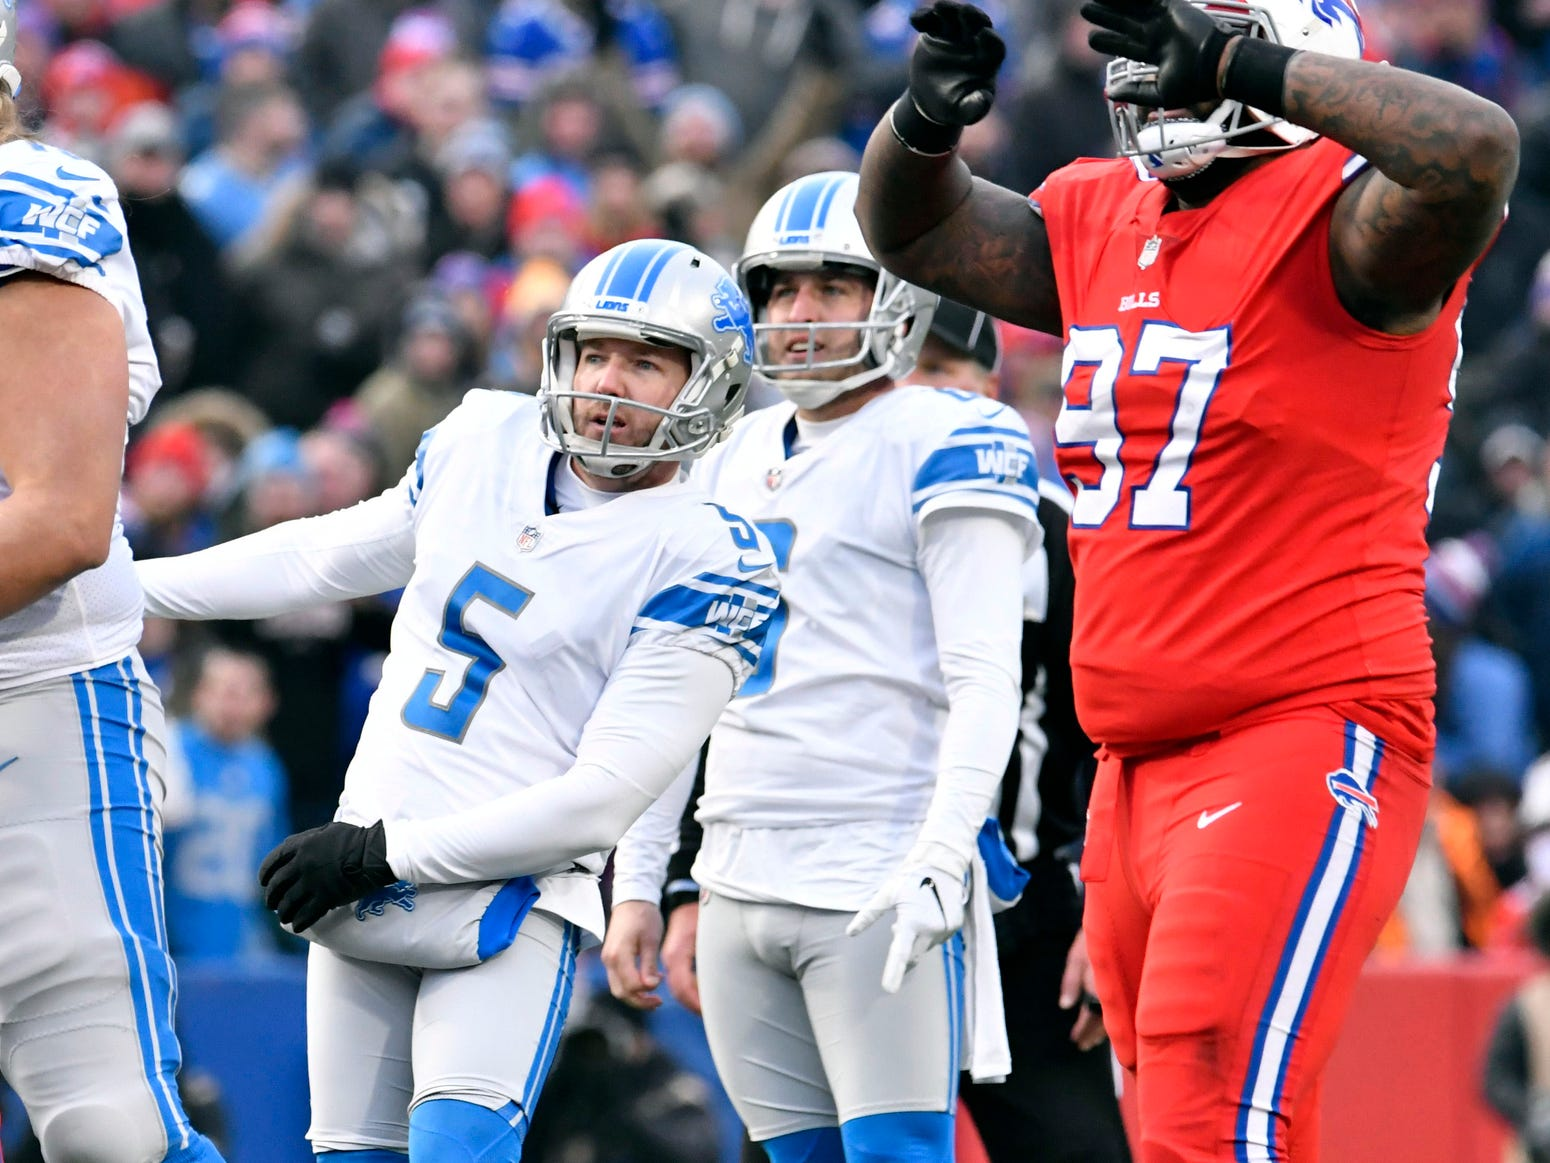 Lions kicker Matt Prater watches his field goal attempt miss late in the fourth quarter of the Lions' 14-13 loss on Sunday, Dec. 16, 2018, in Orchard Park, N.Y.